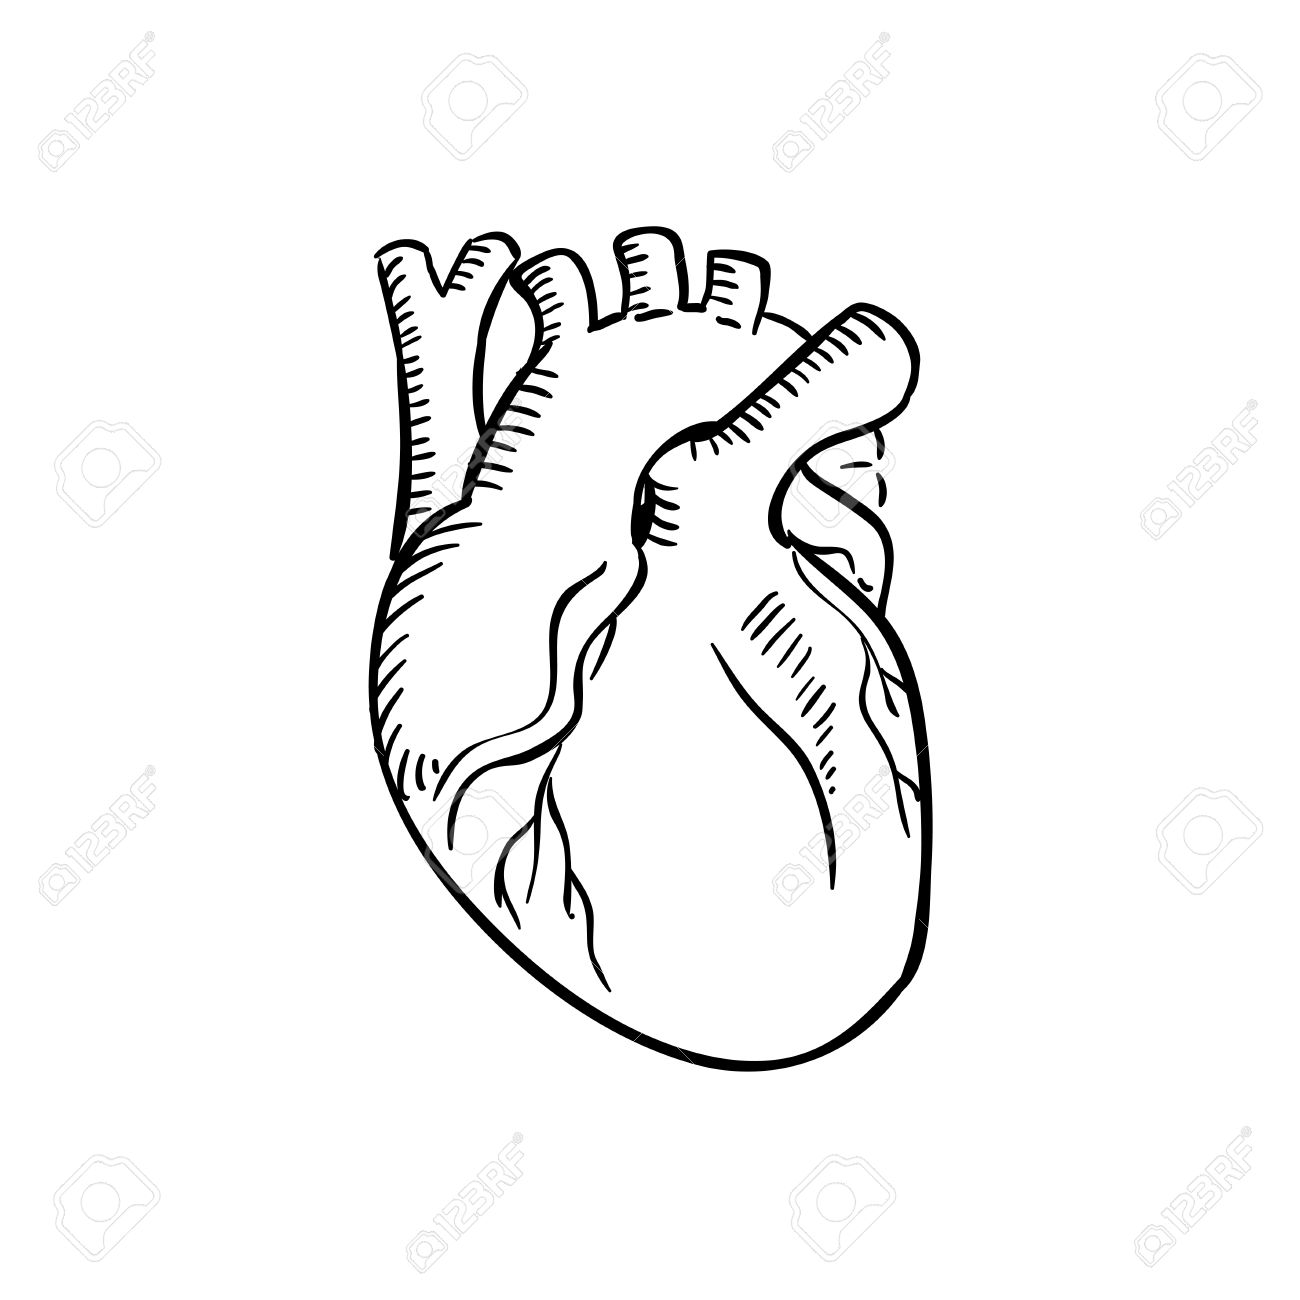 1300x1300 Human Heart Outline Sketch. Isolated Anatomical Detailed Organ